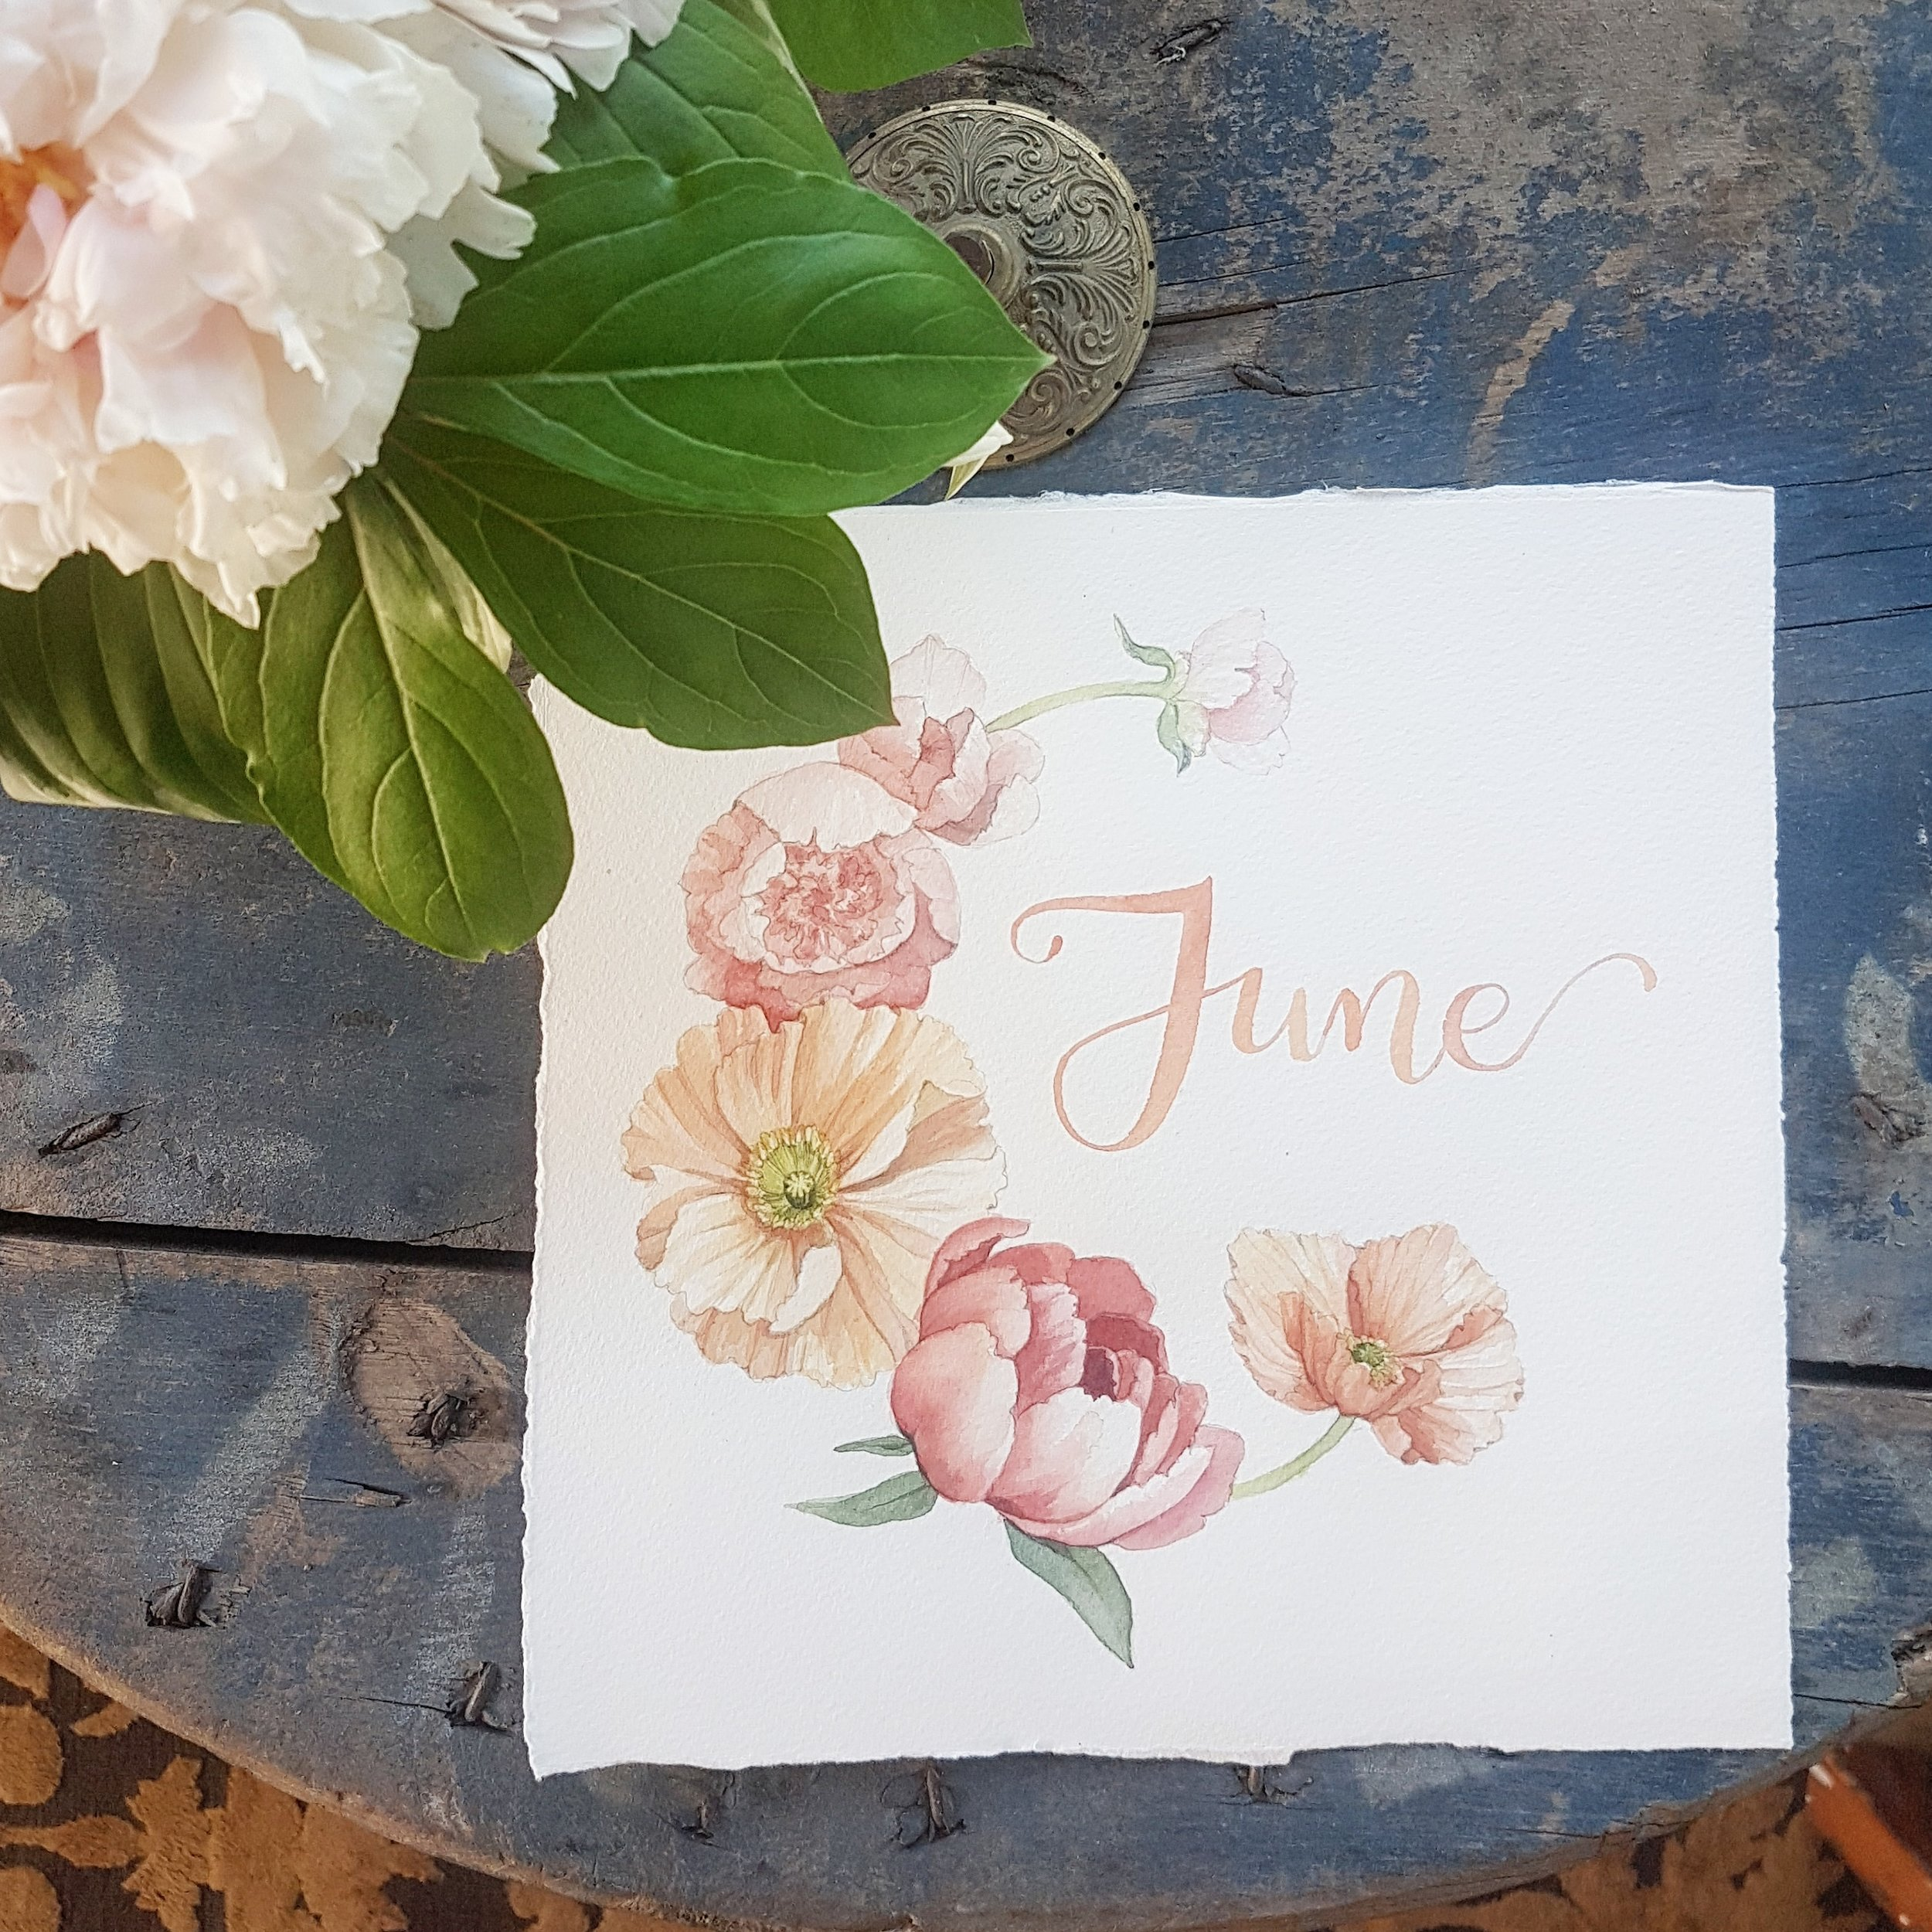 June Monthly Watercolour Illustration - Alicia's Infinity